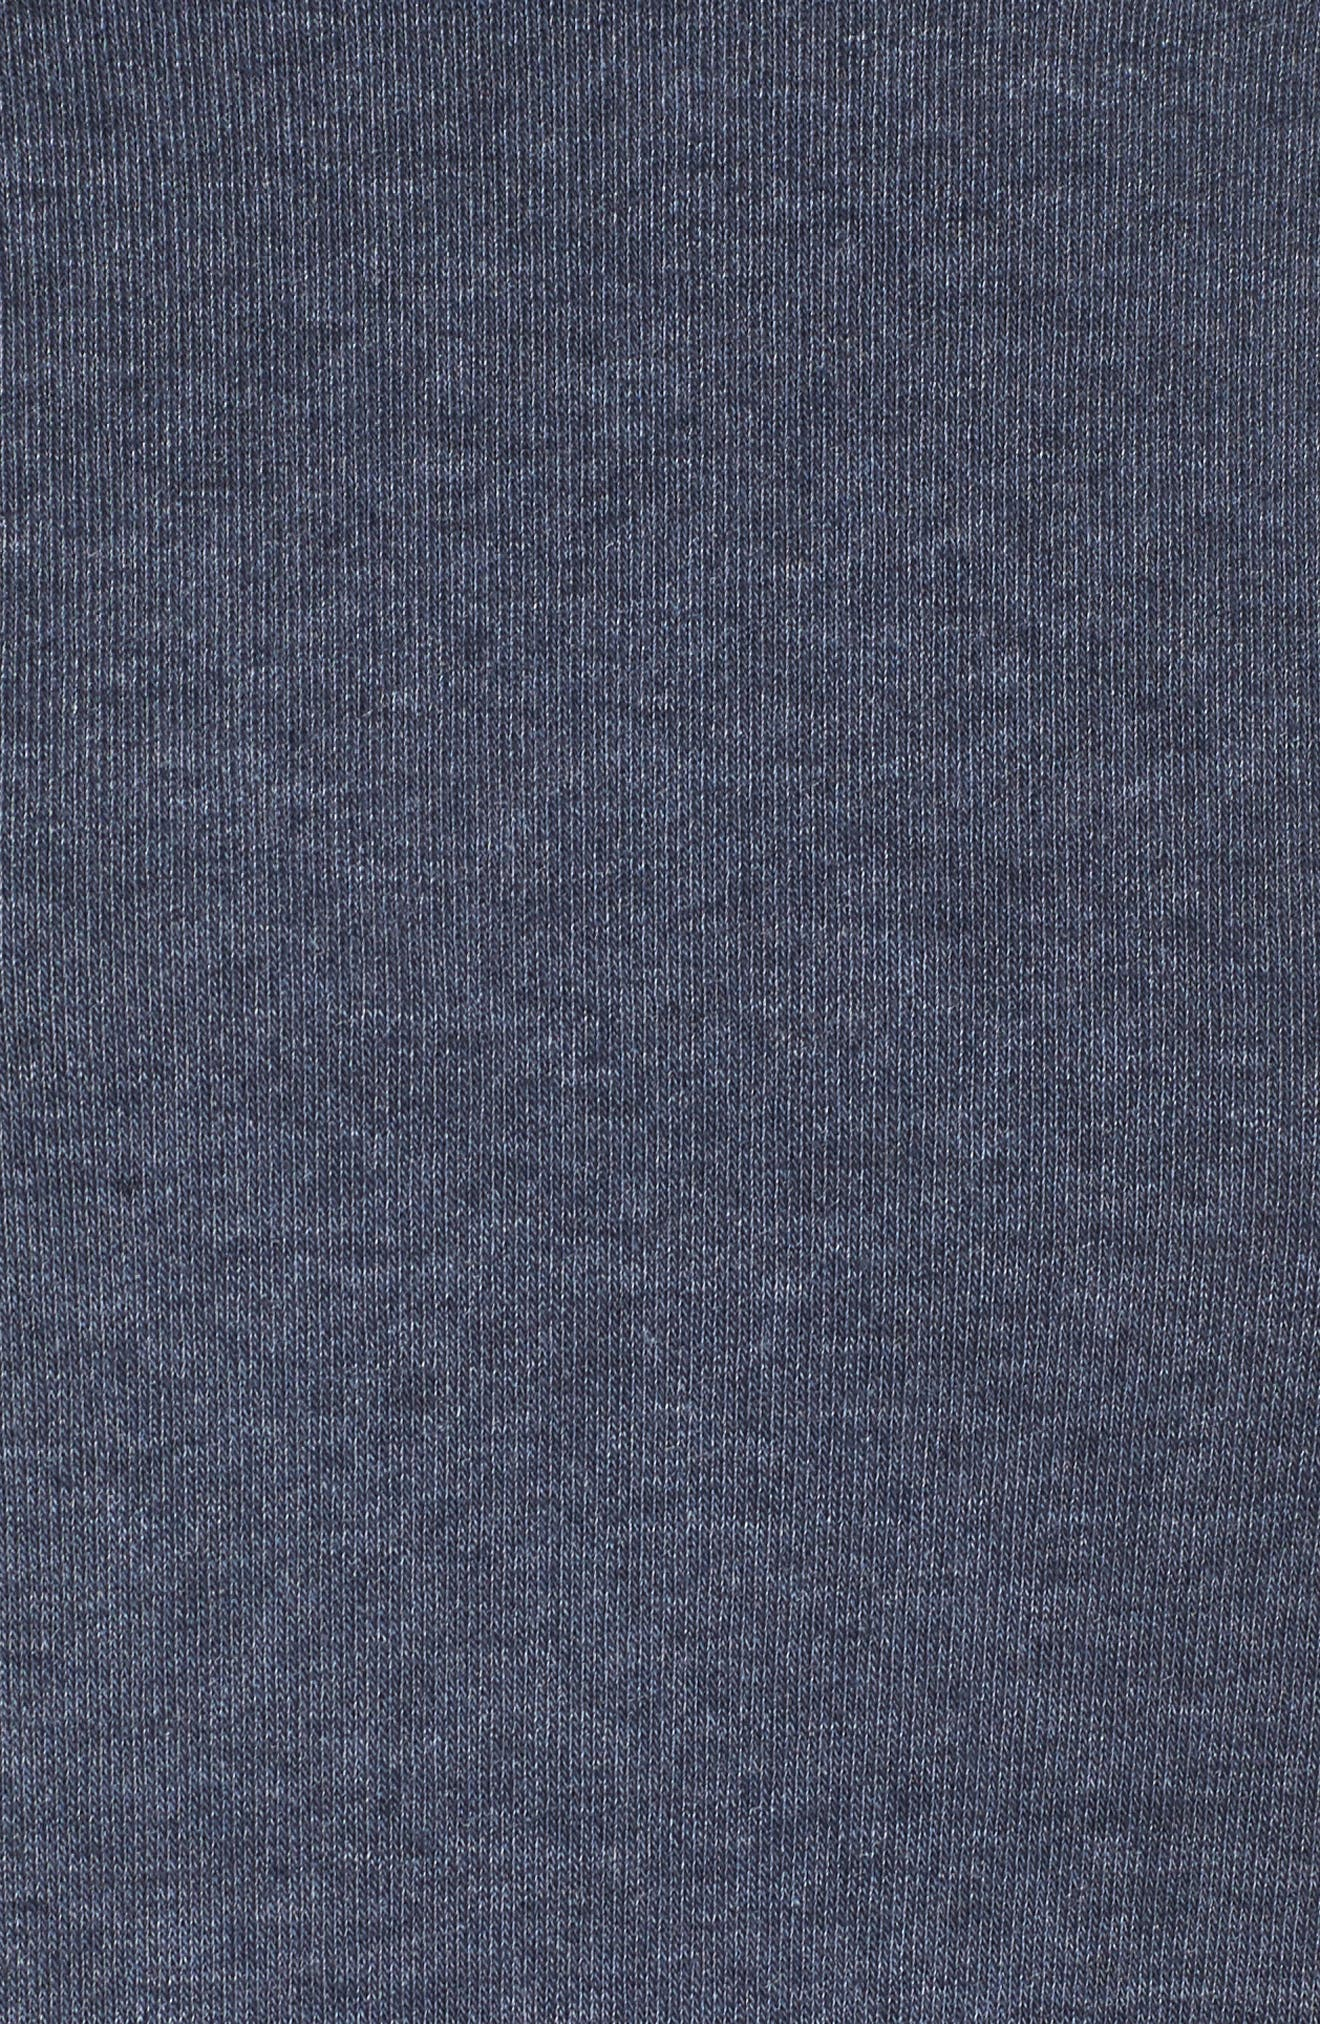 Maniac Sport Pullover,                             Alternate thumbnail 6, color,                             Eco True Navy